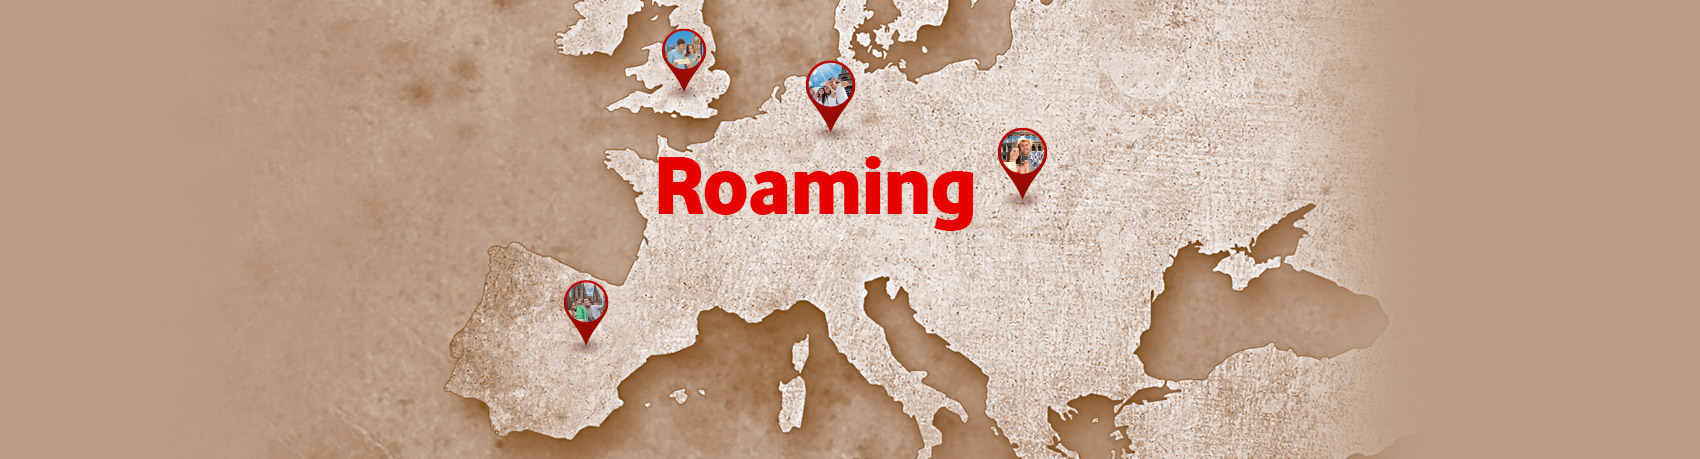 Vodafone Pas Pantou Communicate freely from abroad, with only 2.99€/day in European Union countries